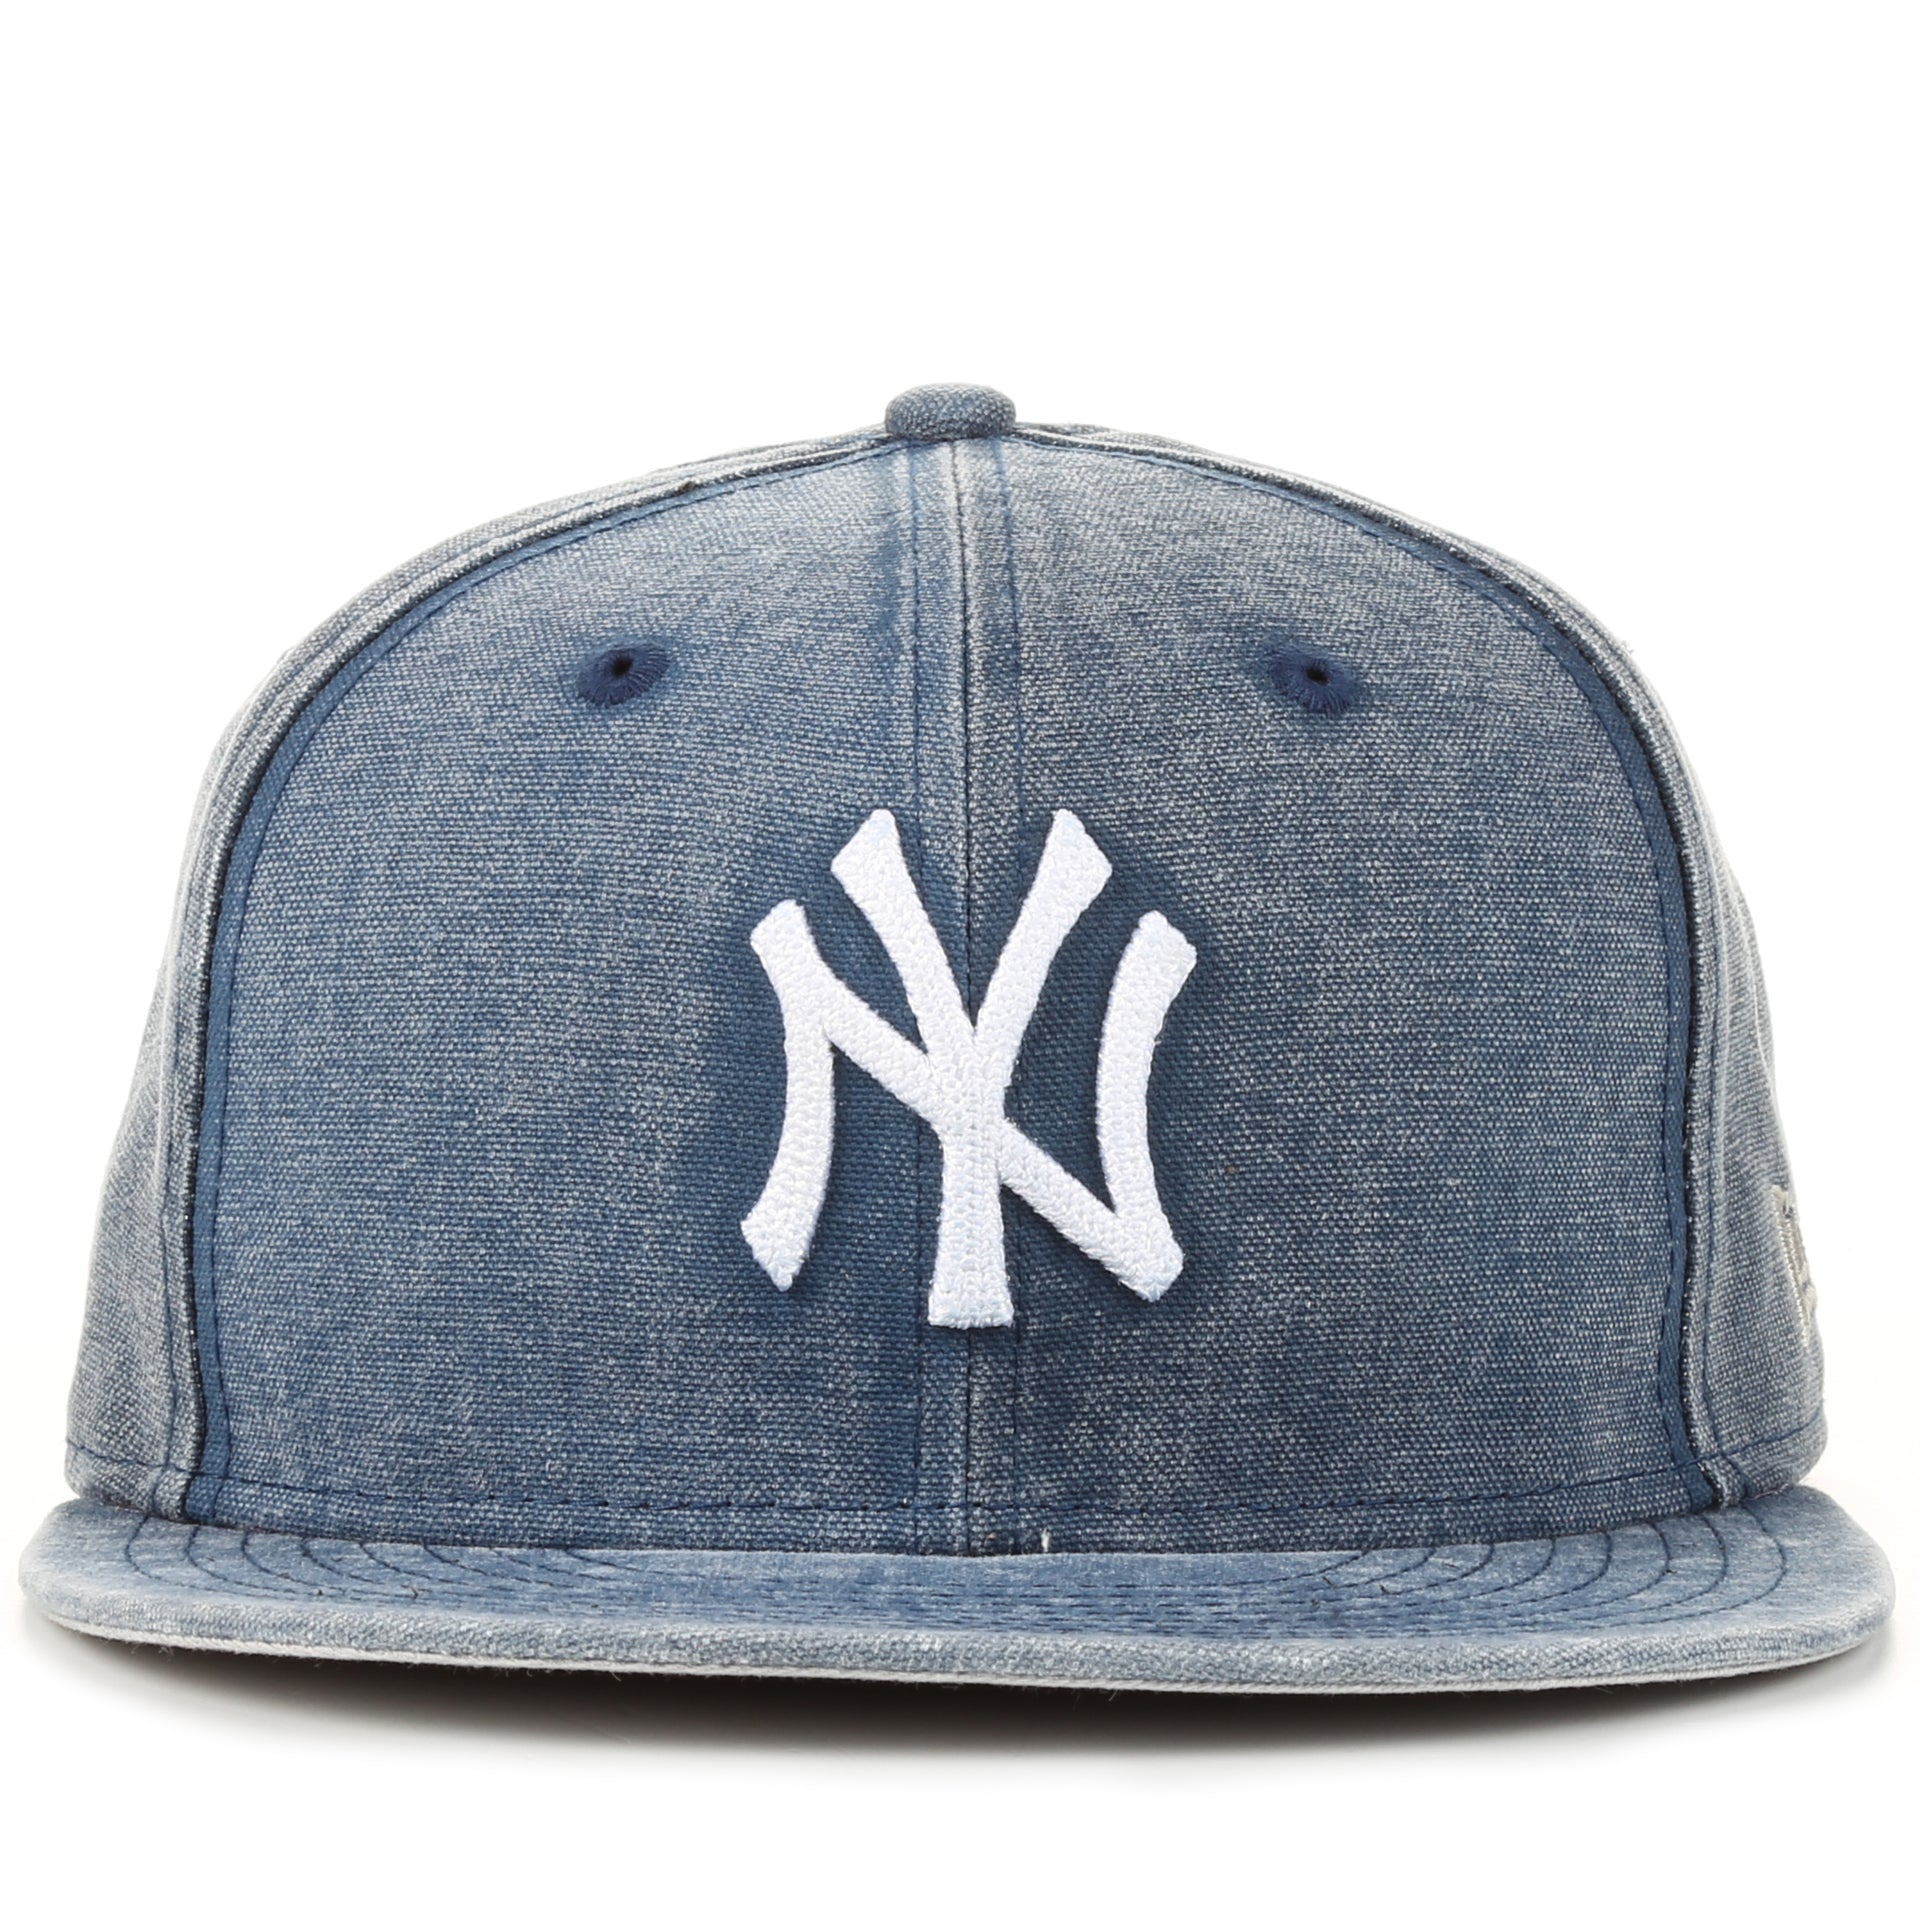 2cbad1a6d27 New Era 9Fifty Washed Over Snapback - New York Yankees Dark Denim ...